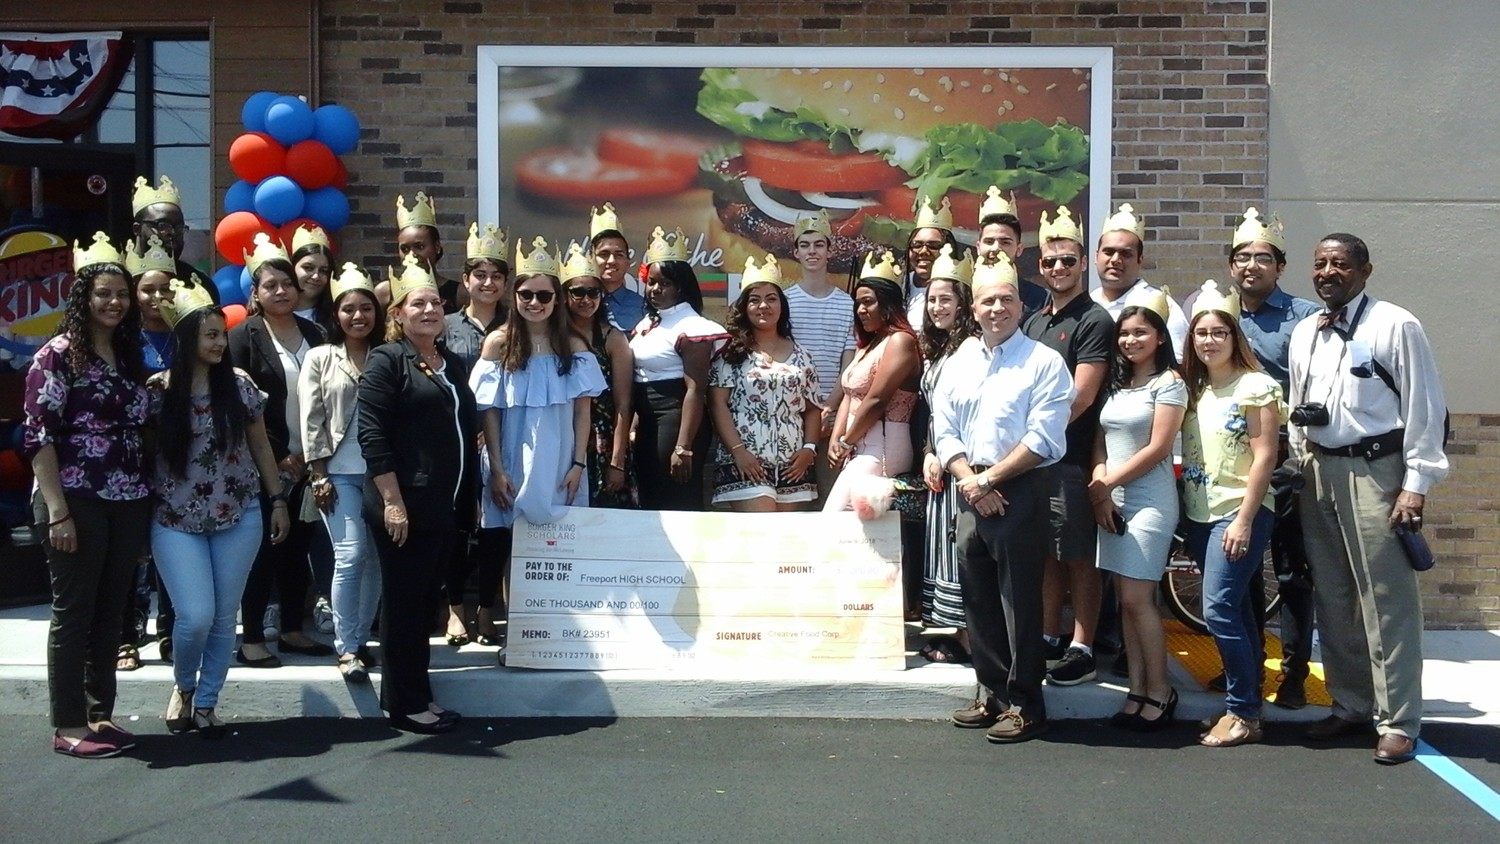 Burger King awarded a whopping $27,000 in scholarships to 27 Nassau County high school seniors, $1000 each, to apply towards their college tuition or expenses.